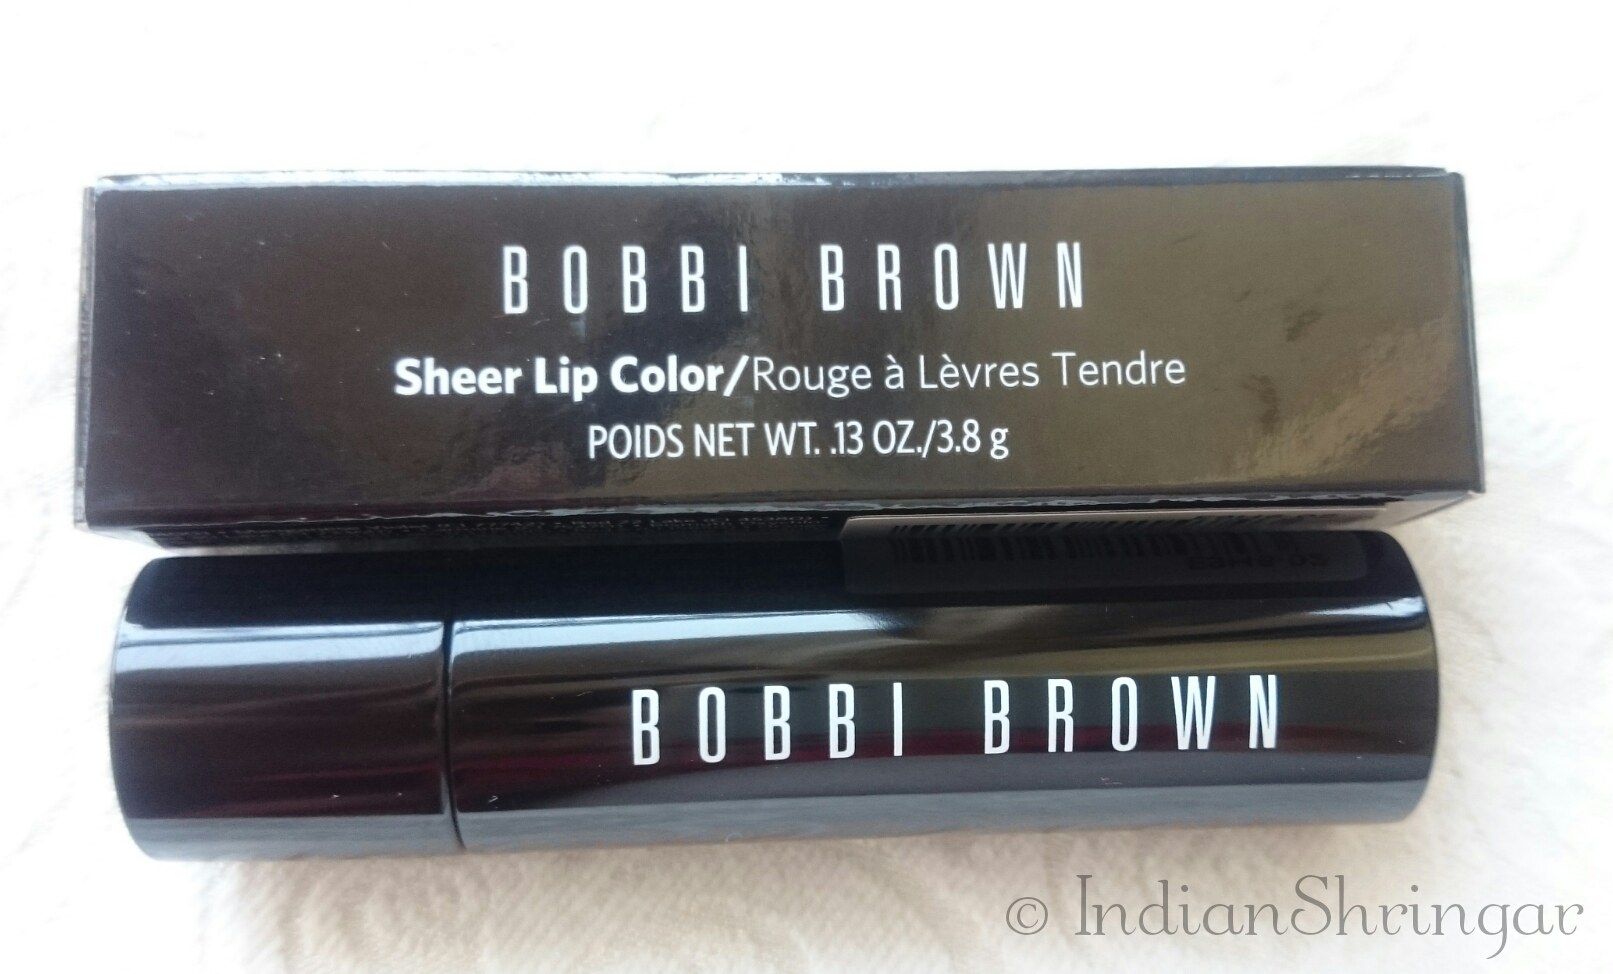 Bobbi Brown Sheer Lip Color Hot Raspberry review, swatch, price in India